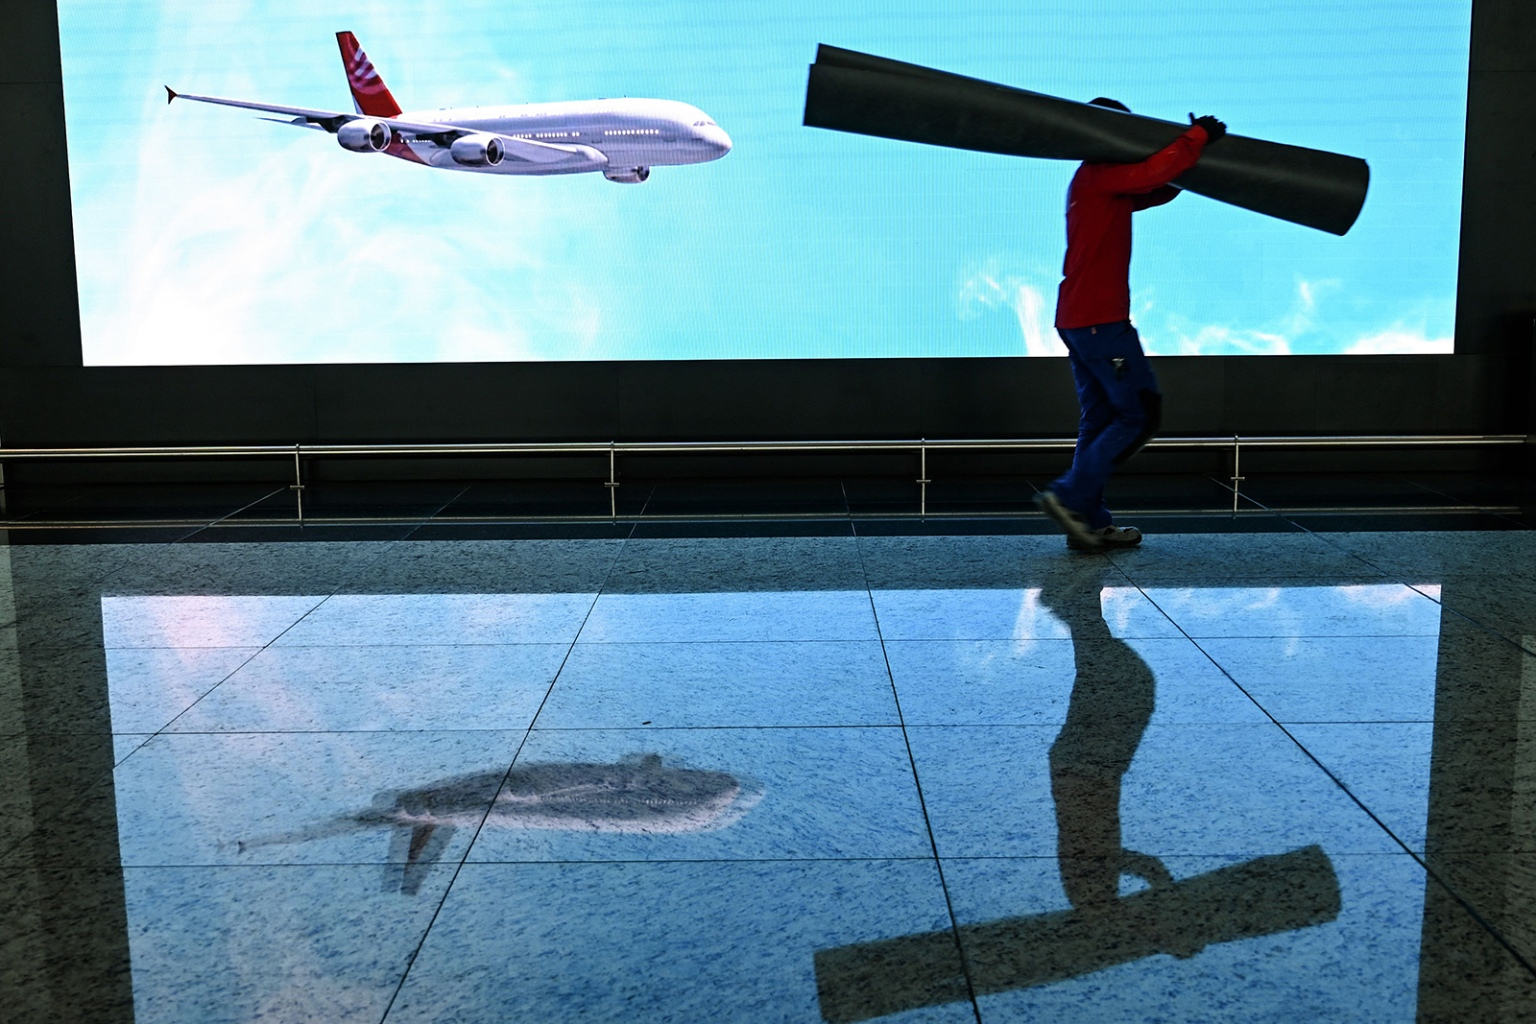 A worker carries a carpet in front of a screen in a hall of the new Istanbul Airport on the first day after it moved from Ataturk International airport on April 6. The move took 45 hours and involved 707 trucks and 800 staff members to move 10,000 pieces of equipment piece by piece. OZAN KOSE/AFP/Getty Images